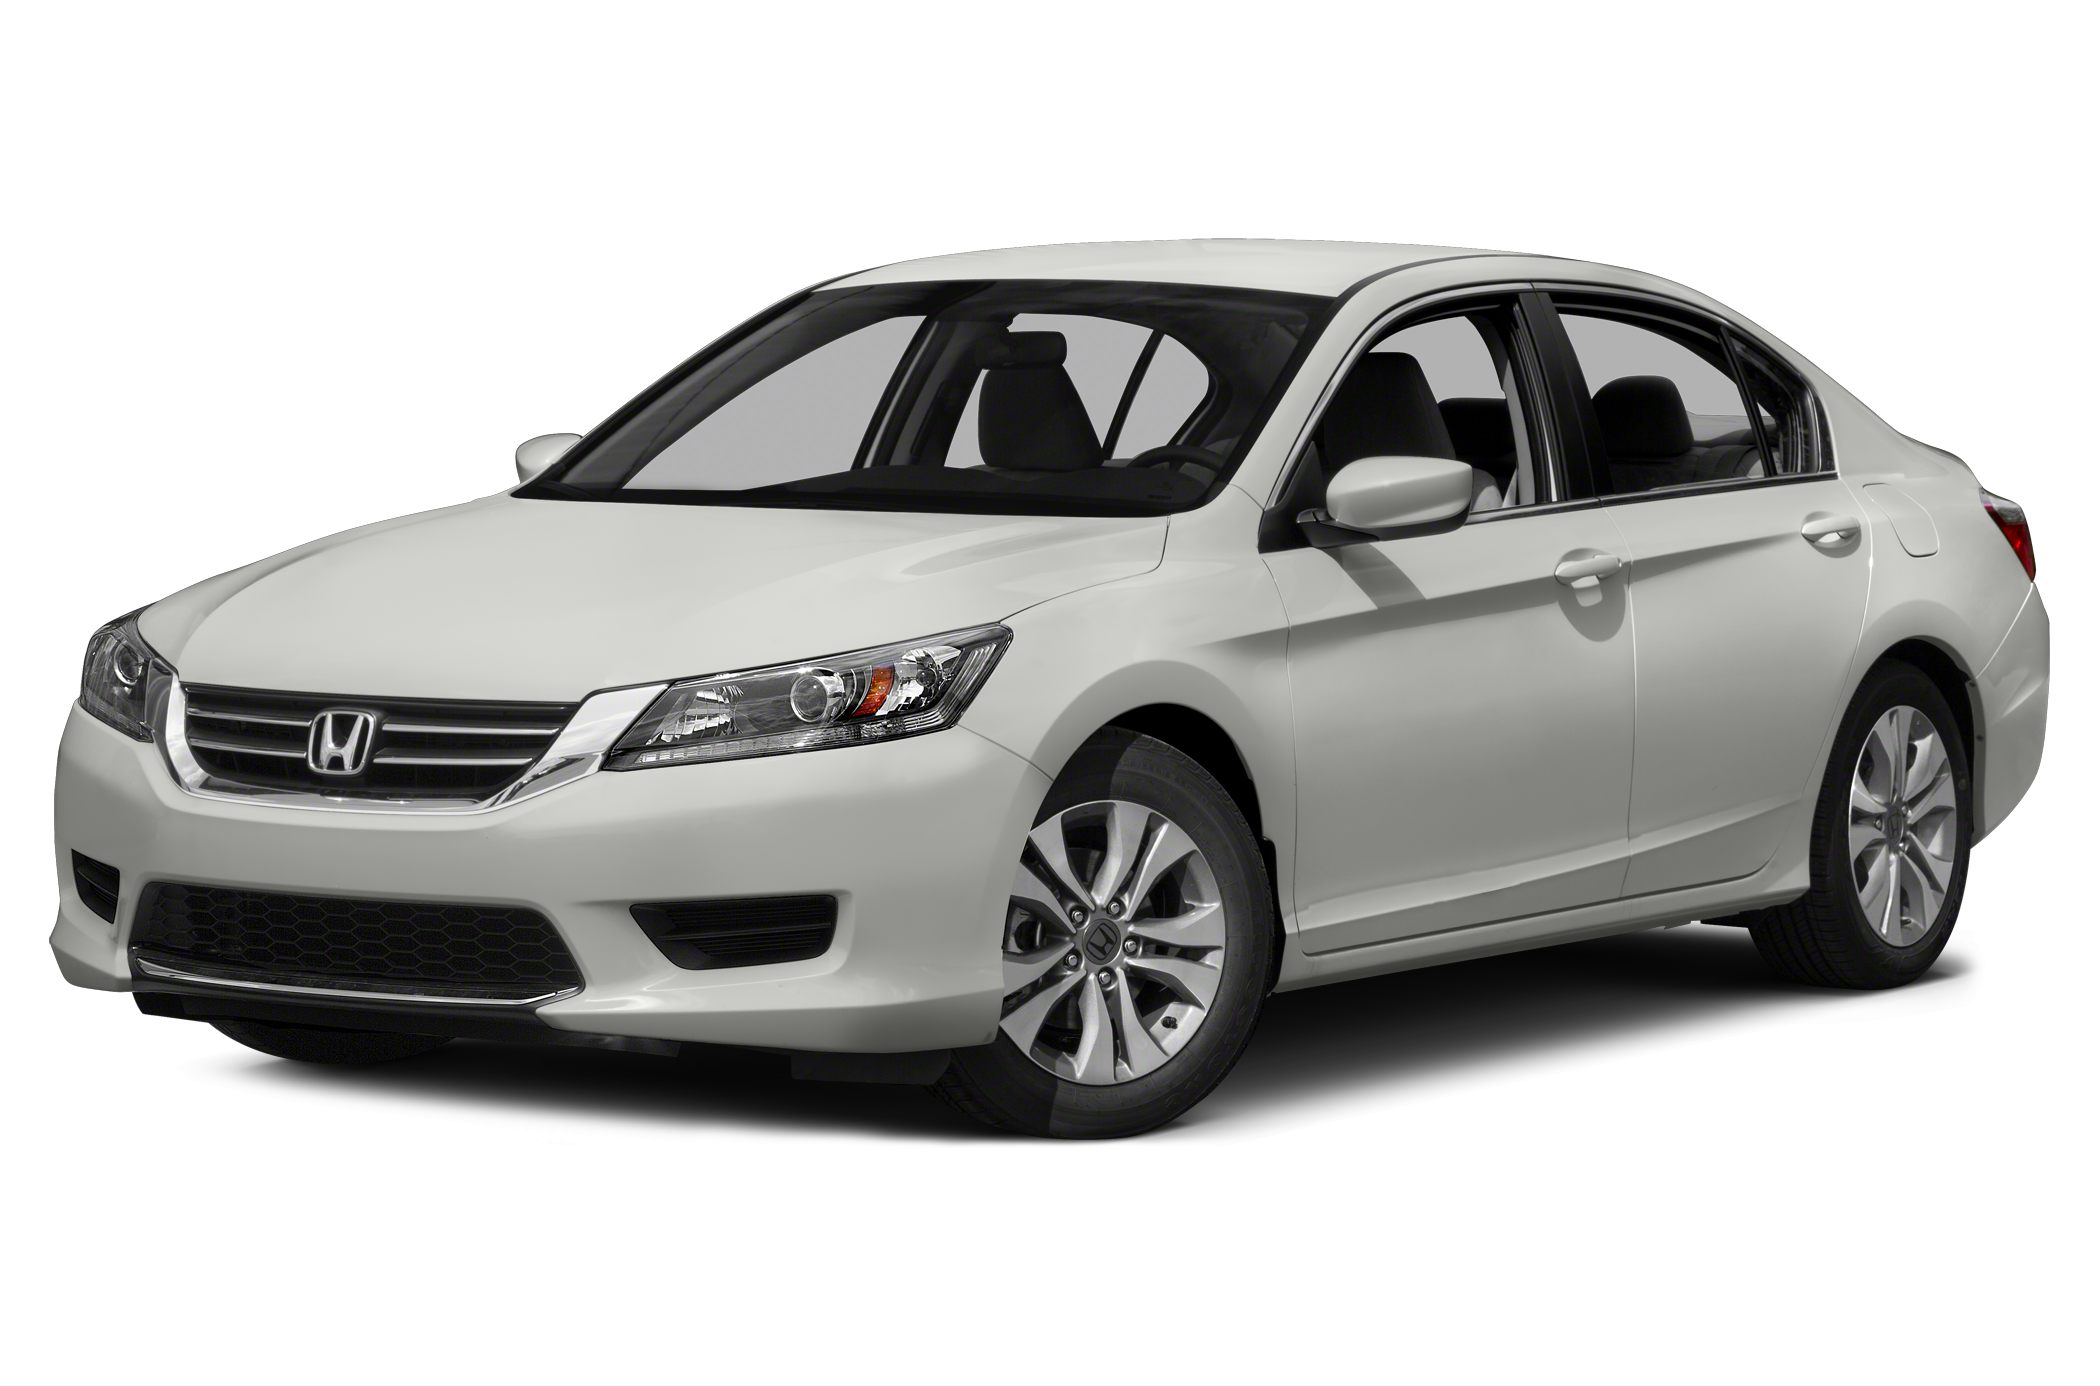 2015 Honda Accord LX Sedan for sale in Lockport for $23,725 with 5 miles.